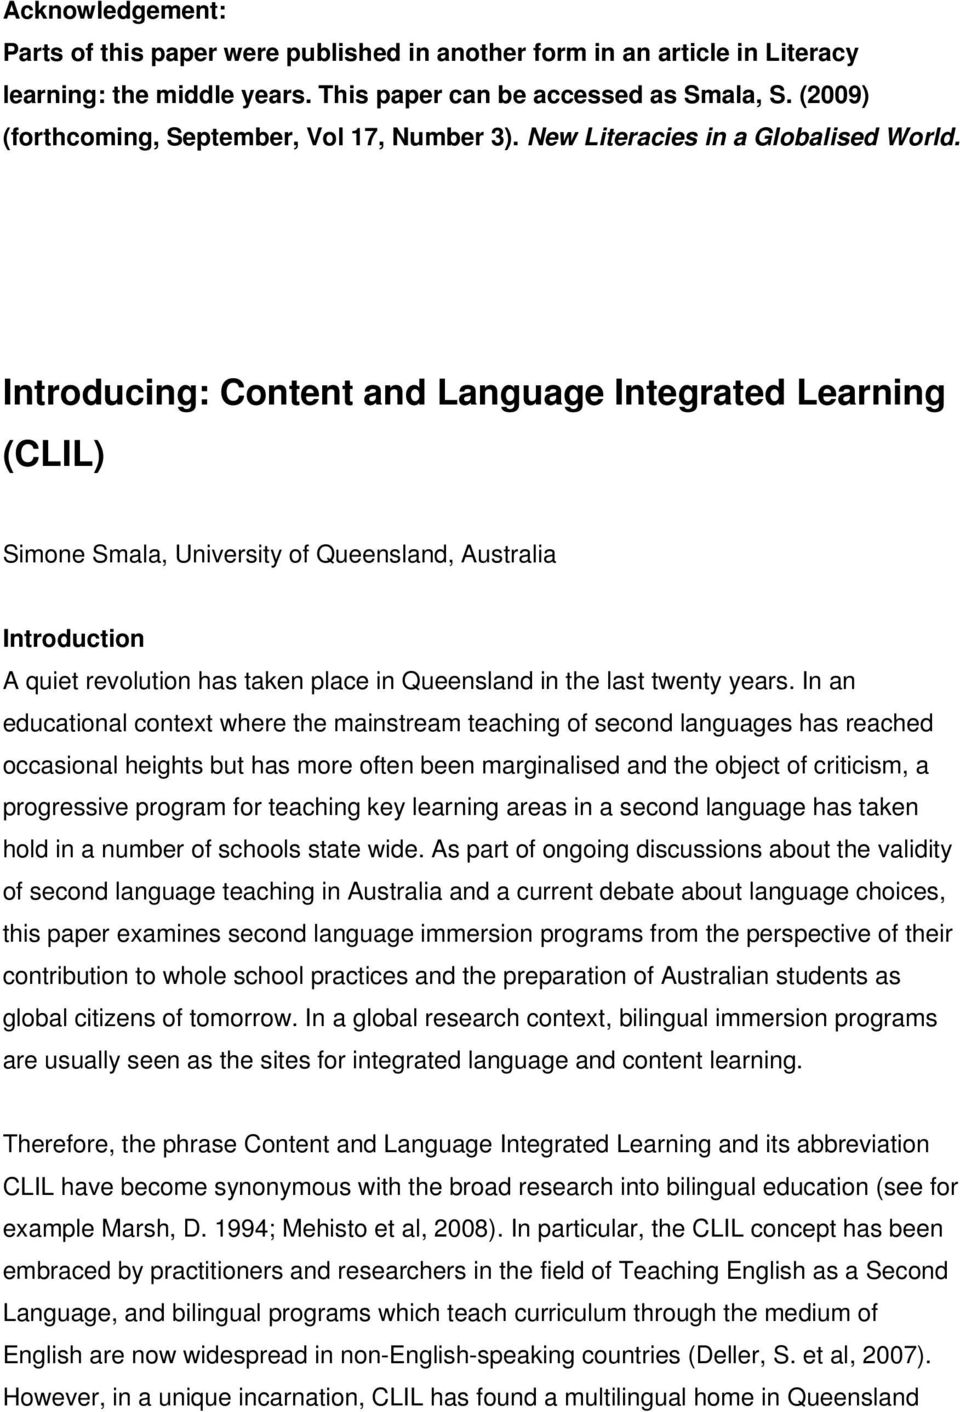 Introducing: Content and Language Integrated Learning (CLIL) Simone Smala, University of Queensland, Australia Introduction A quiet revolution has taken place in Queensland in the last twenty years.